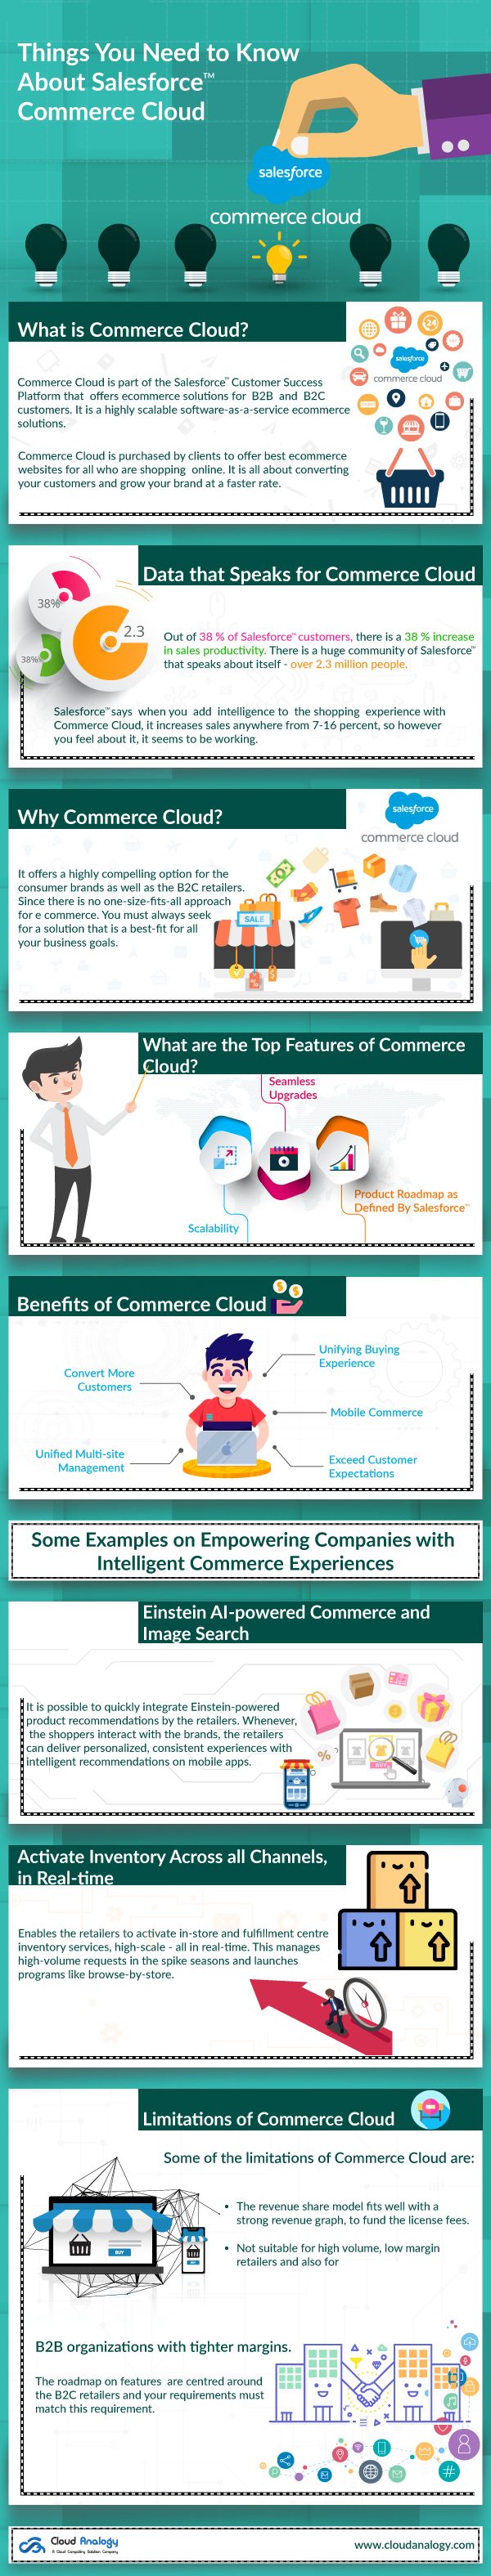 Final Things-You-Need-to-know-About-Salesforce-Commerce-cloud